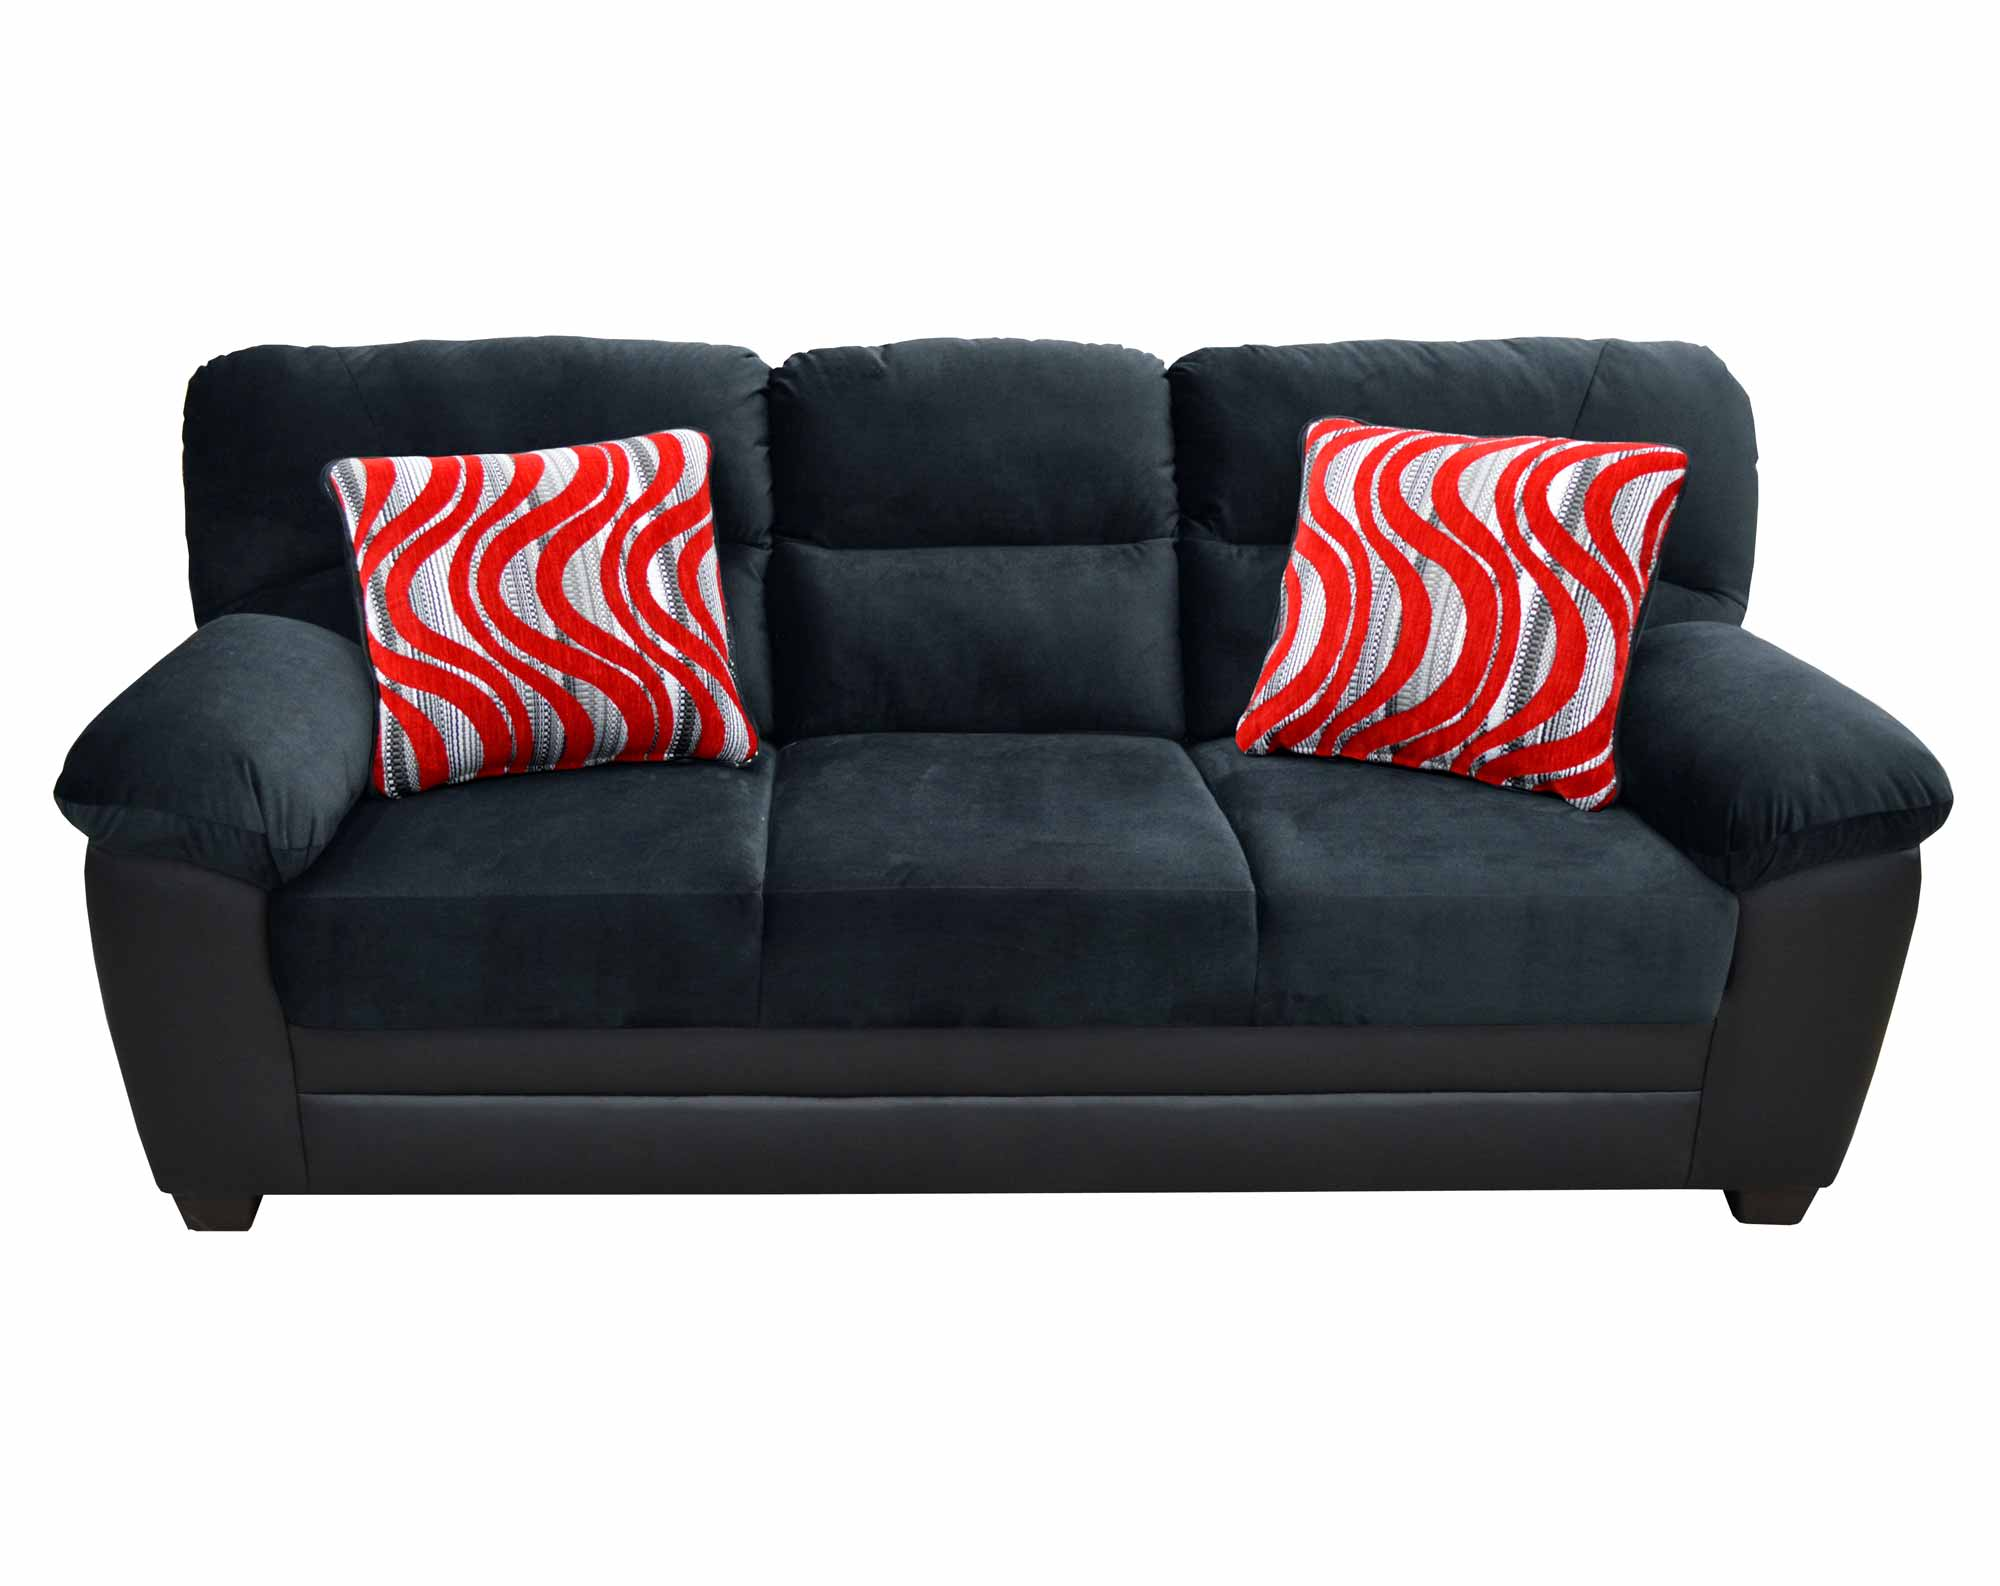 Peralta Black Sofa